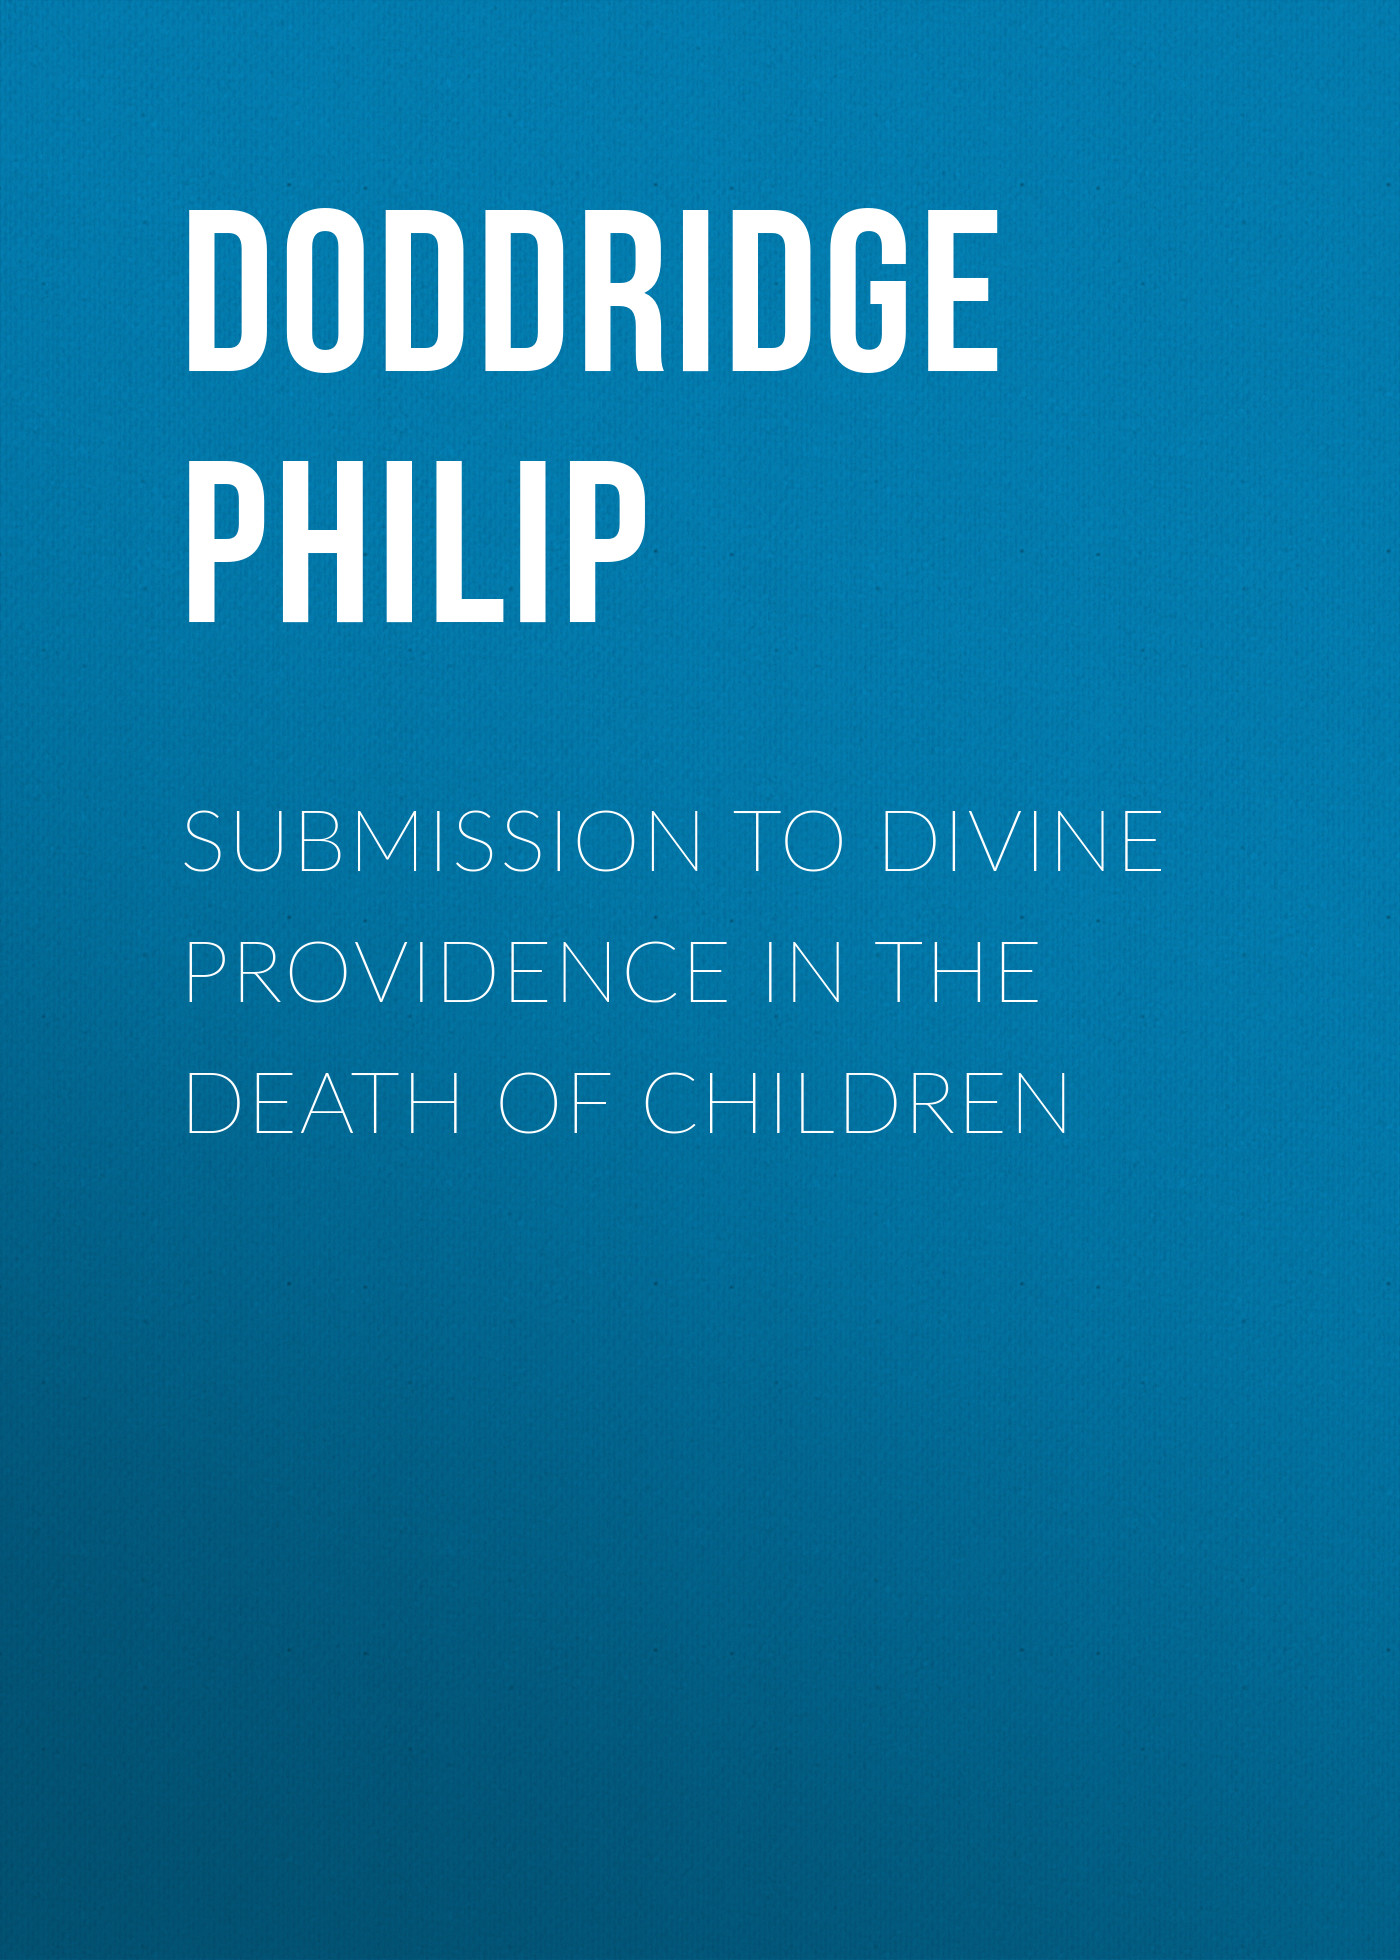 Doddridge Philip Submission to Divine Providence in the Death of Children the lomwe s formative value of dependence on the divine providence